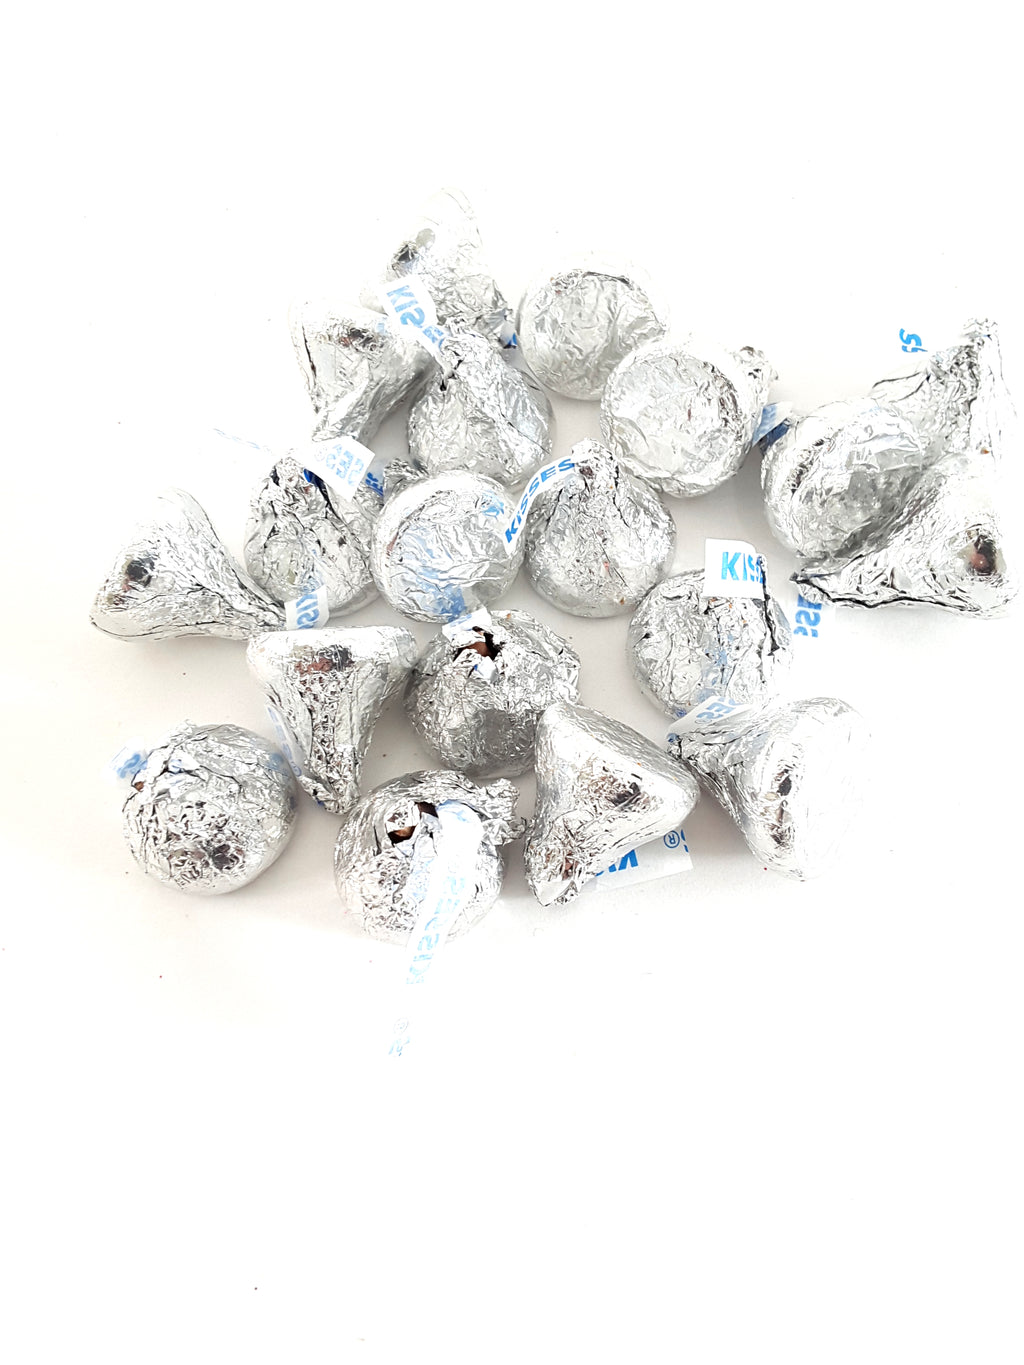 Candy to add to your Greeting Card - TheLastWordBish.com